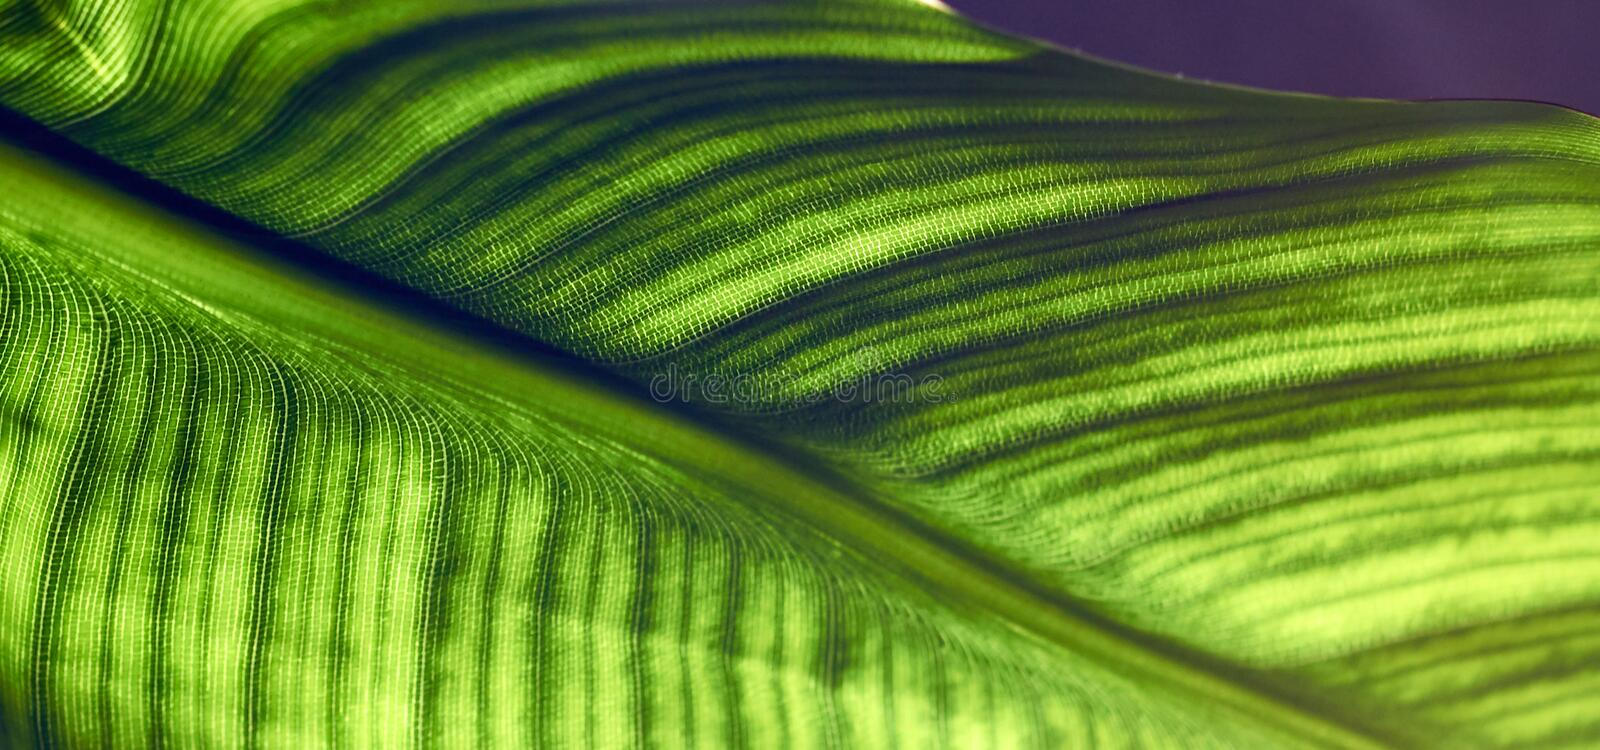 Big leaf of strelitzia isolated on white background. Leaf of strelitzia with cells and veins are visible, macro, close-up, isolated on white background, crop royalty free stock image